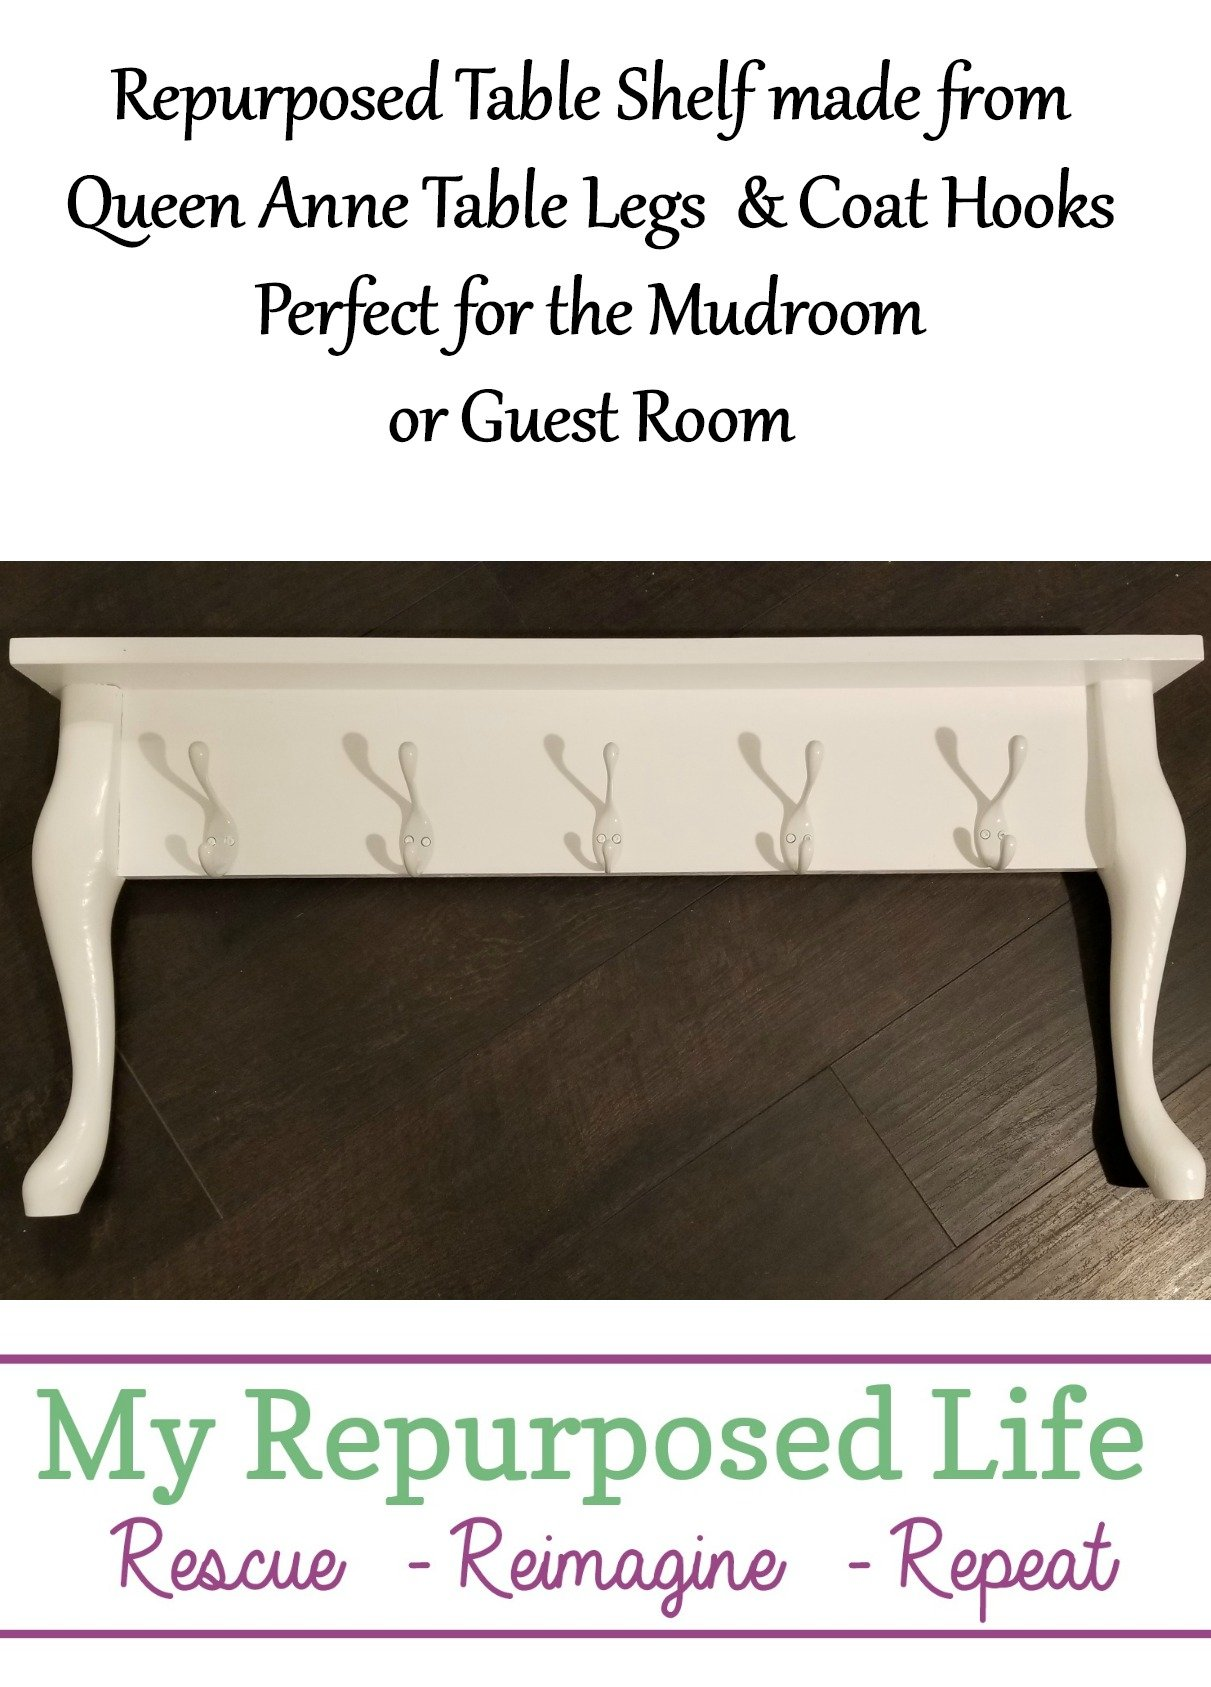 Using thrift store queen anne legs and a couple of boards, this repurposed table shelf with hooks is easy to make. It's good for the mudroom or guest room. #MyRepurposedLife #repurposed #table #shelf #hook #rack via @repurposedlife